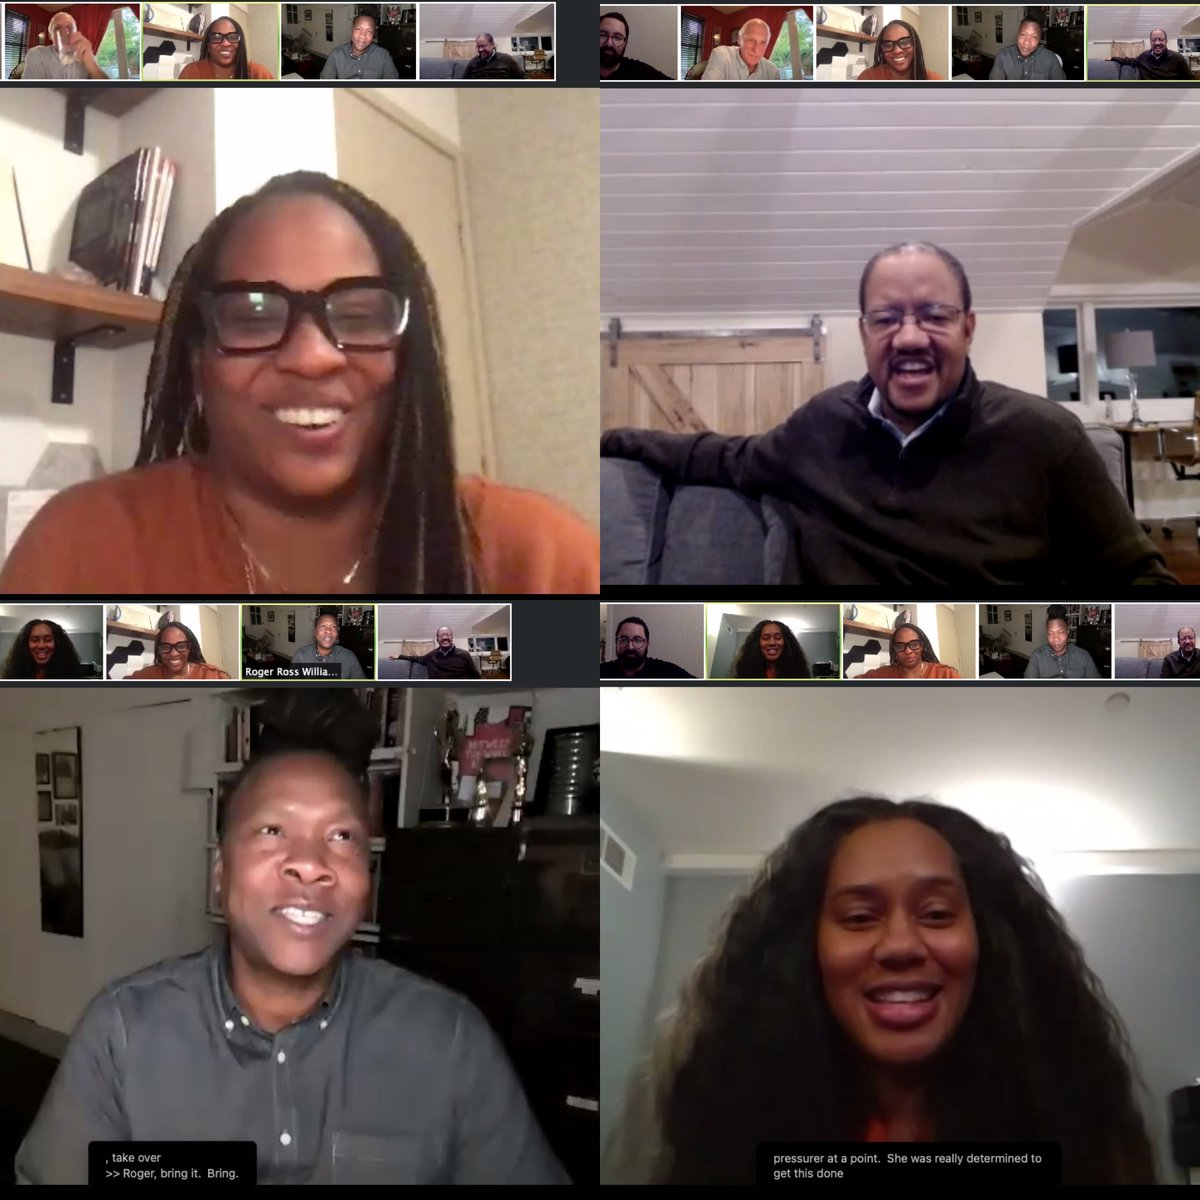 Some great news: Last week's #BestSeatInTheHouse Q&A with the #BetweenTheWorldAndMe team raised $3,045 for @ApolloTheater!   HUGE thanks to @Kamilahf @RogerRossWill @StrautMike and @Al_is_a_Payne for leading this convo on Black resilience & joy. Watch at